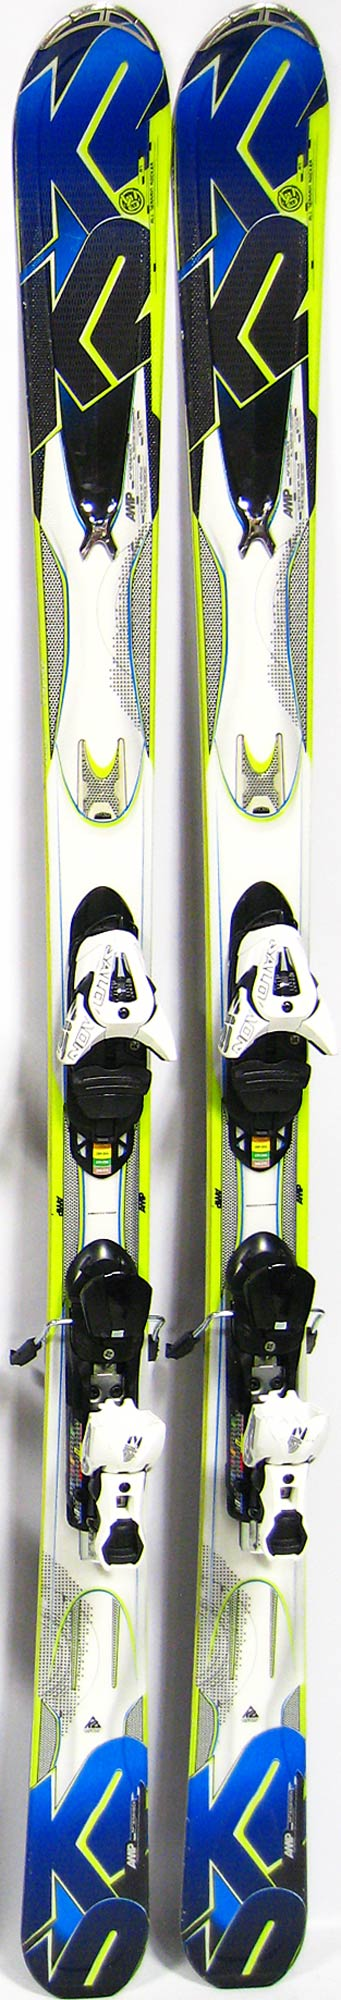 Topsheets of 2013 K2 Amp Aftershock Skis For Sale